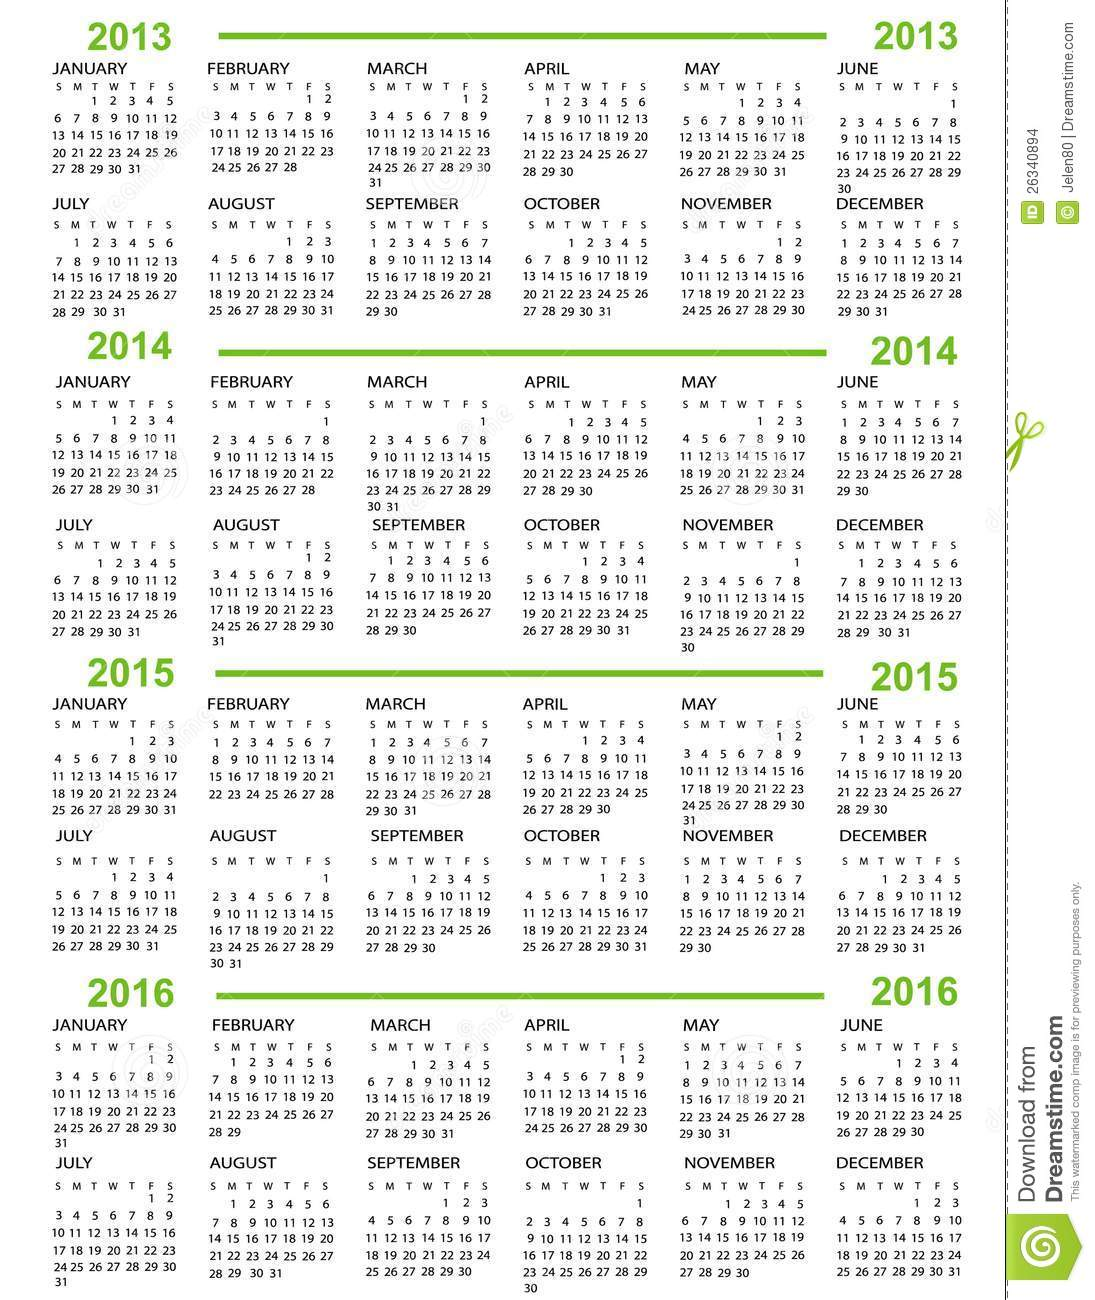 Calendar New Year 2013 2014 2015 2016 with green lines.